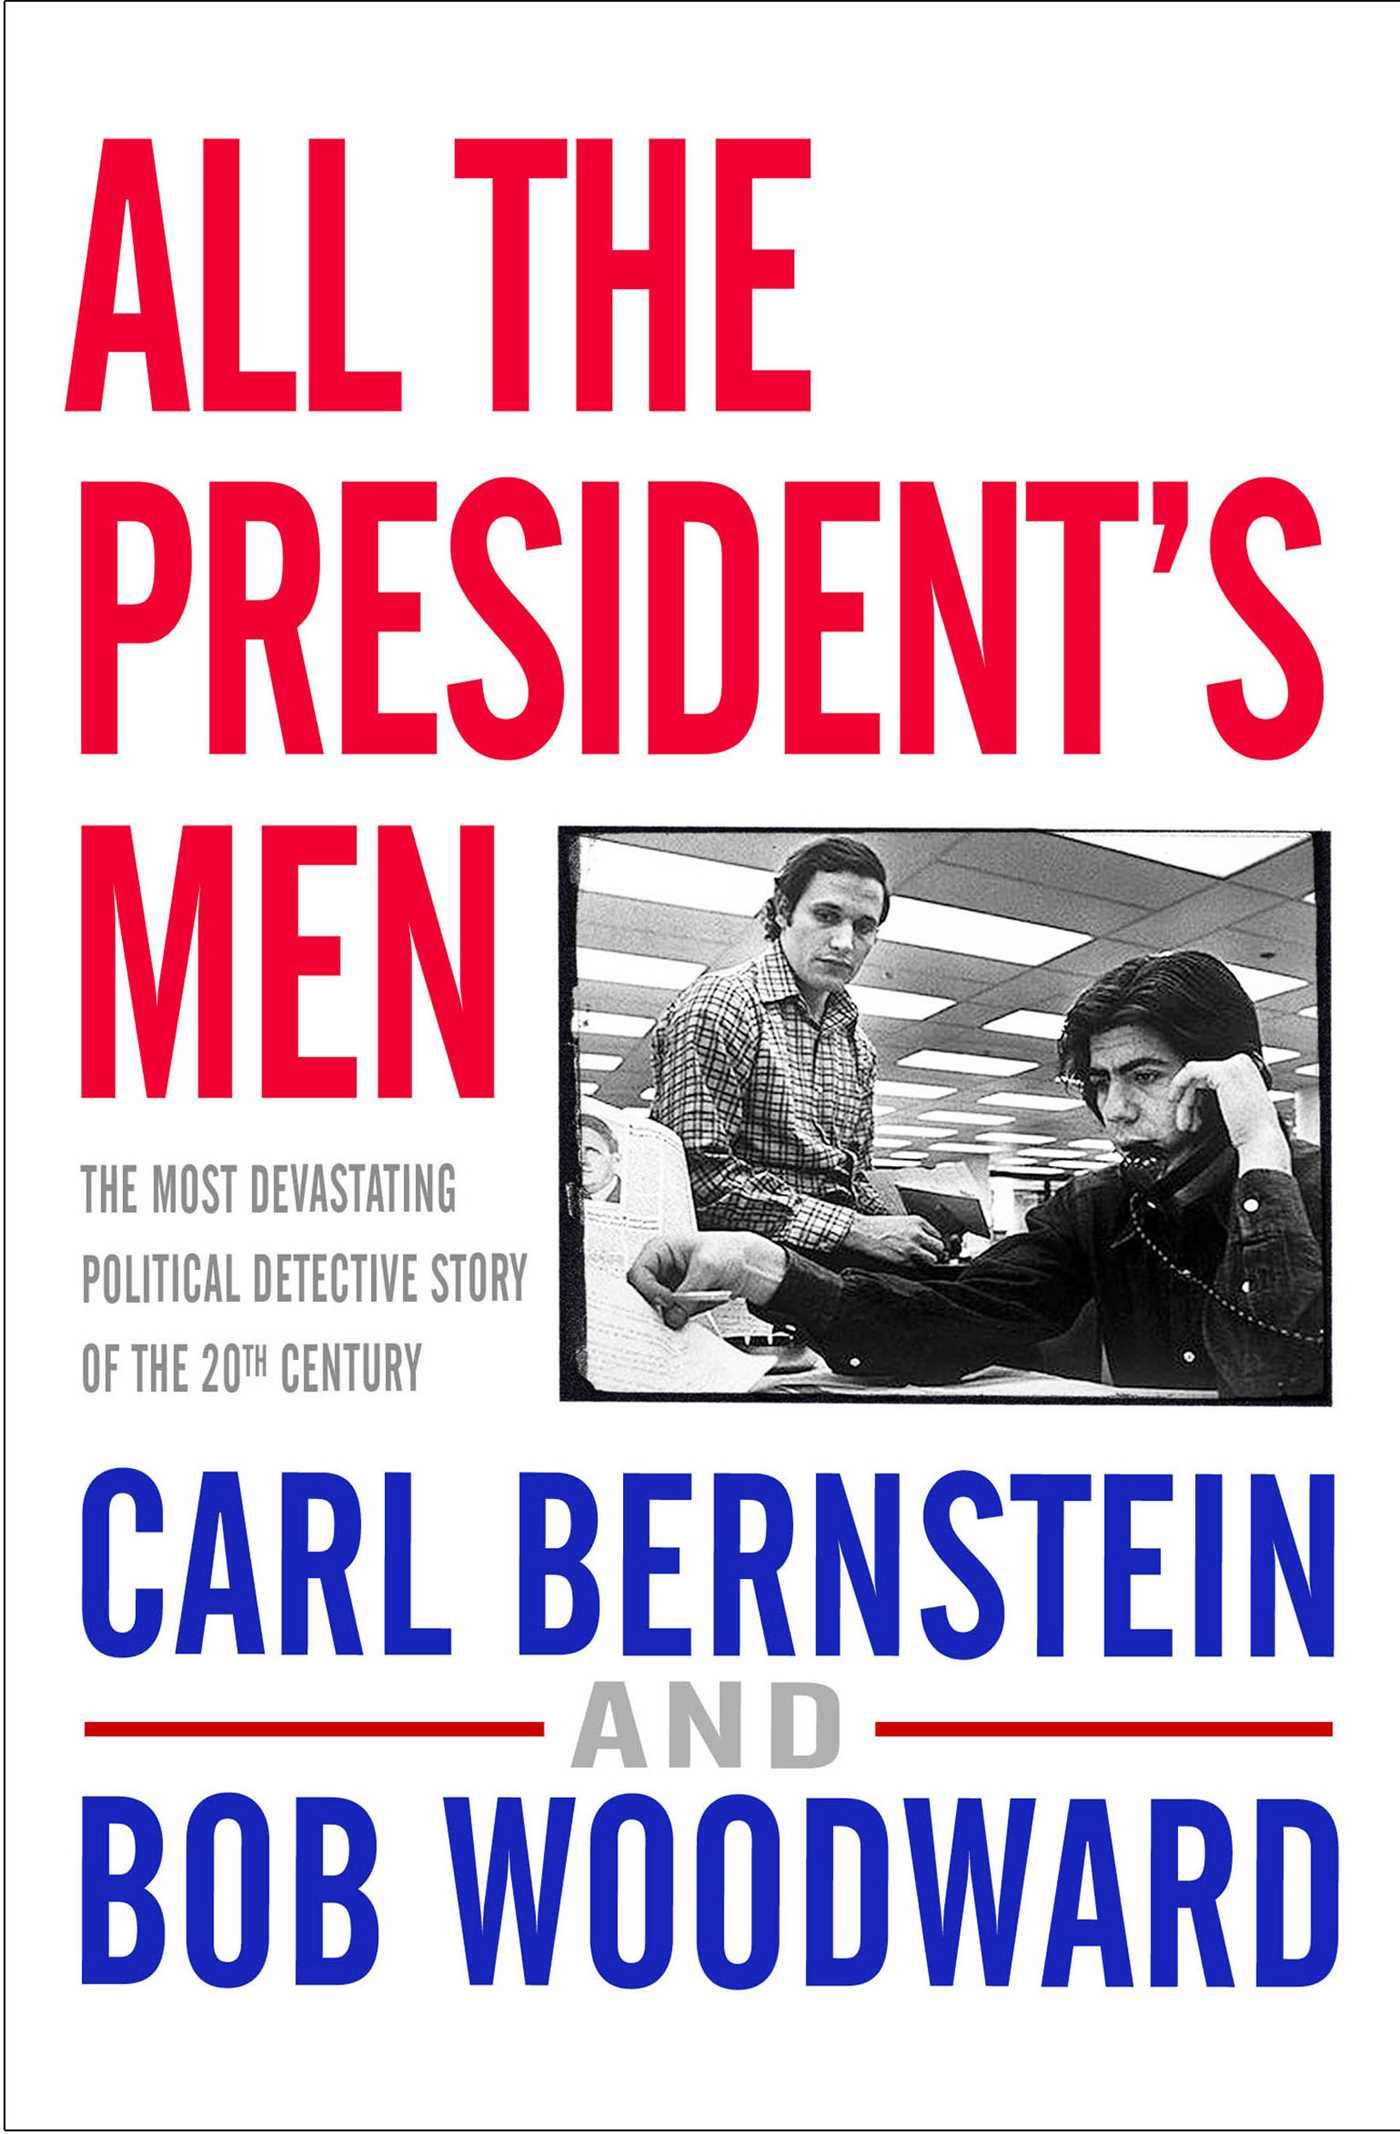 an analysis of all the presidents men The director alan j pakula had helmed four films by the time the offer to direct all  the president's men arrived on his desk two of them, klute.